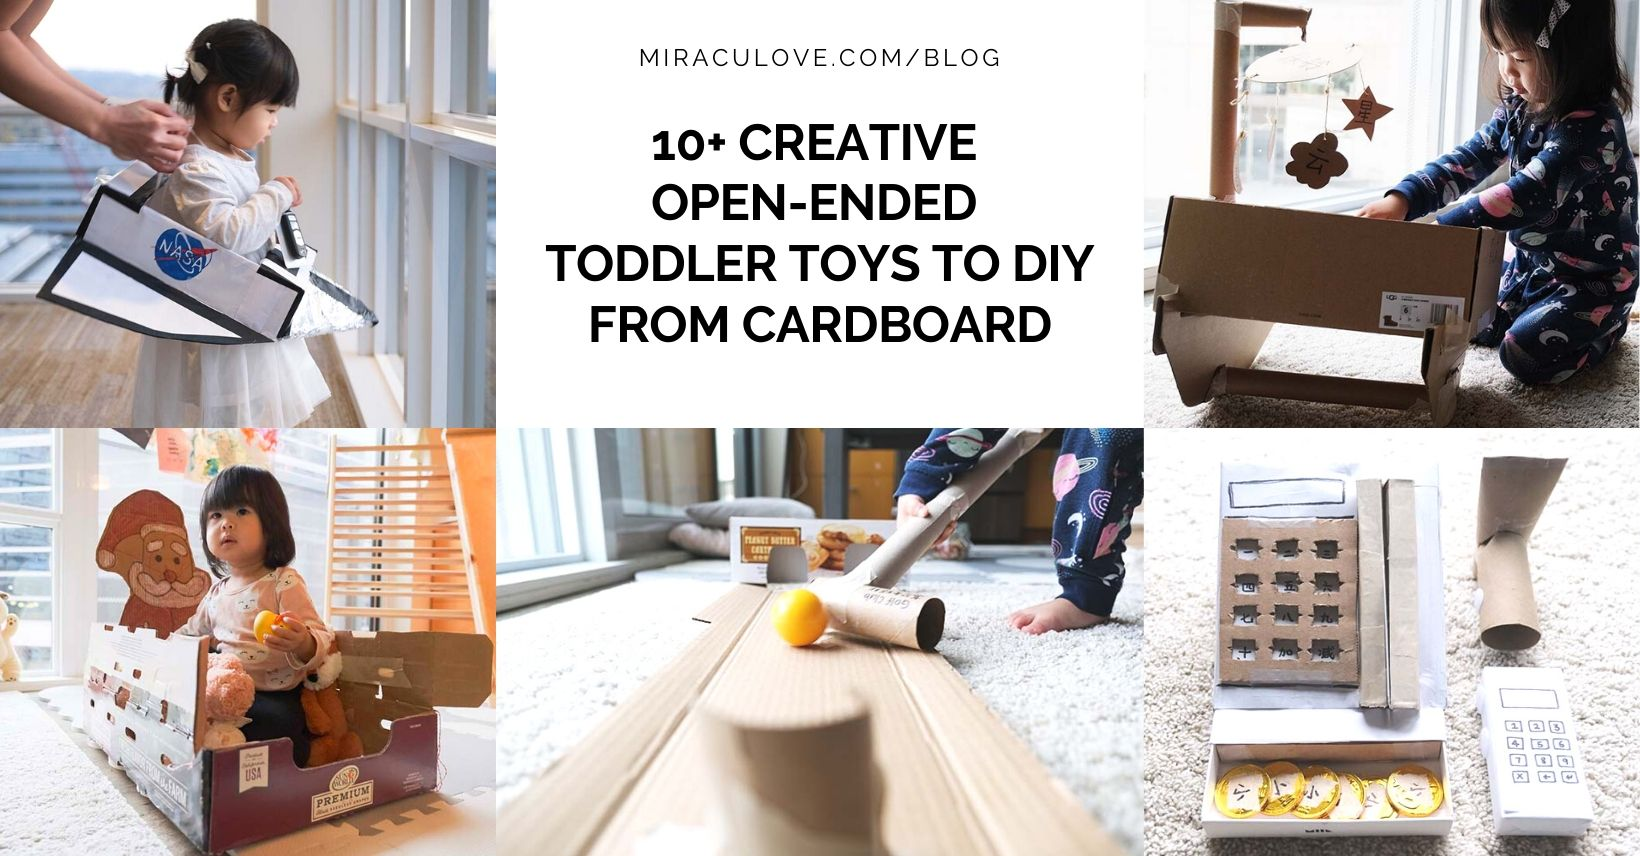 10+ Creative Open Ended Toddler Toys to DIY from Cardboard